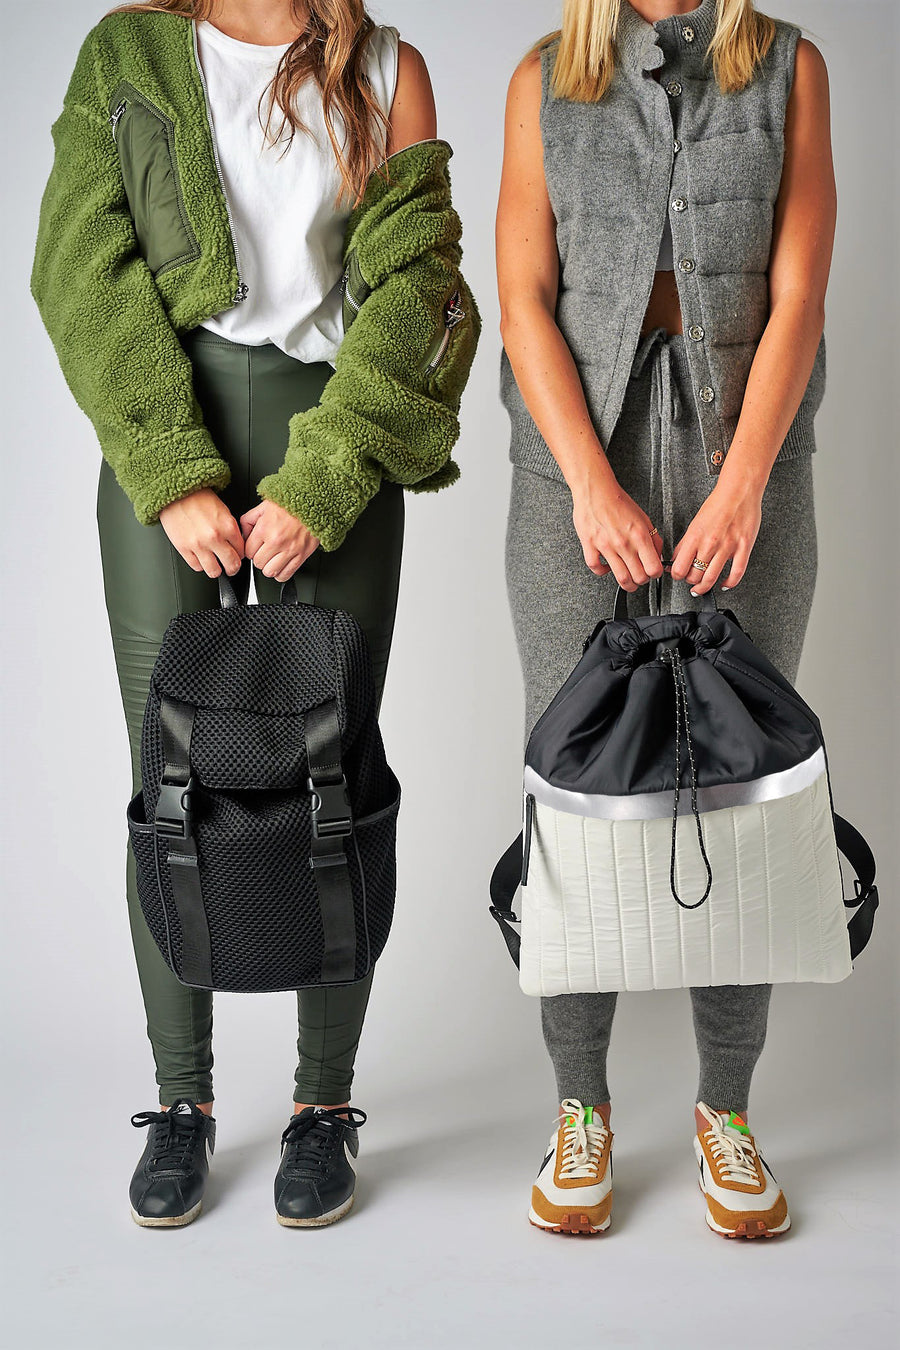 Two people holding Anya & Niki backpacks, including the Newberry black mesh backpack and the Pace black & white nylon cinch top backpack.